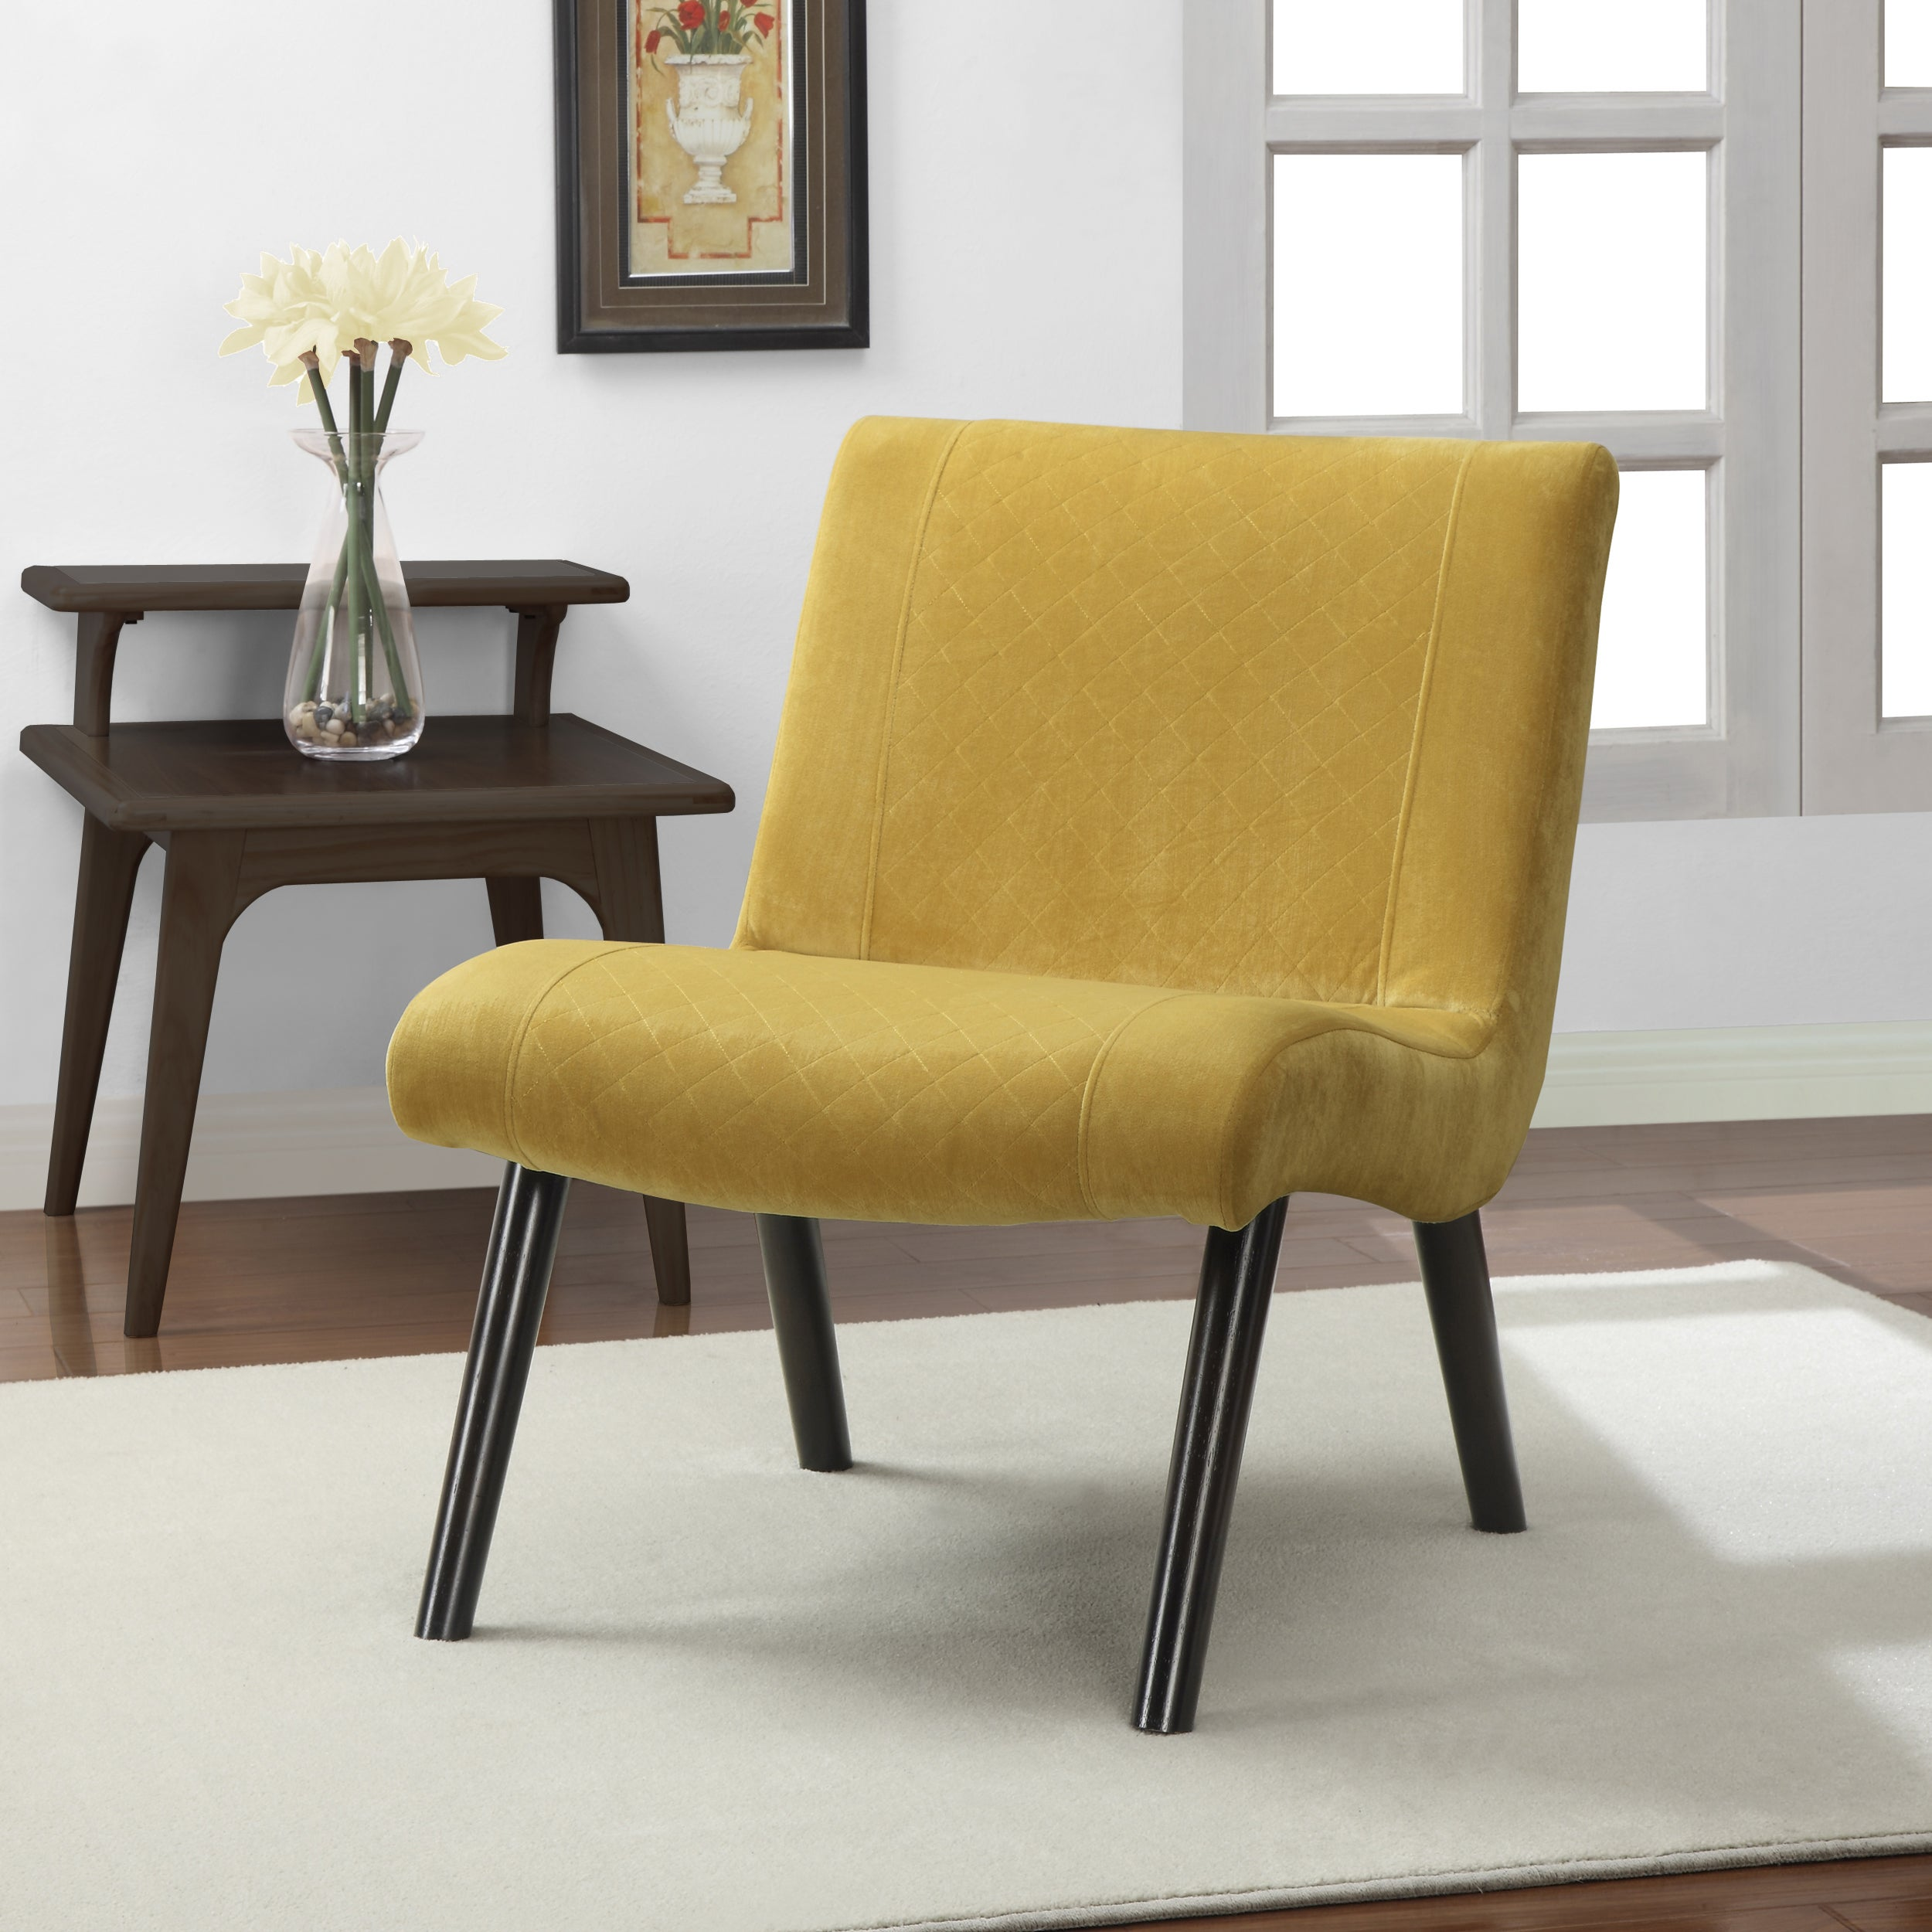 Ordinaire Shop Palm Canyon Quilted Mustard Yellow Upholstery Armless Chair   Free  Shipping Today   Overstock.com   7978452